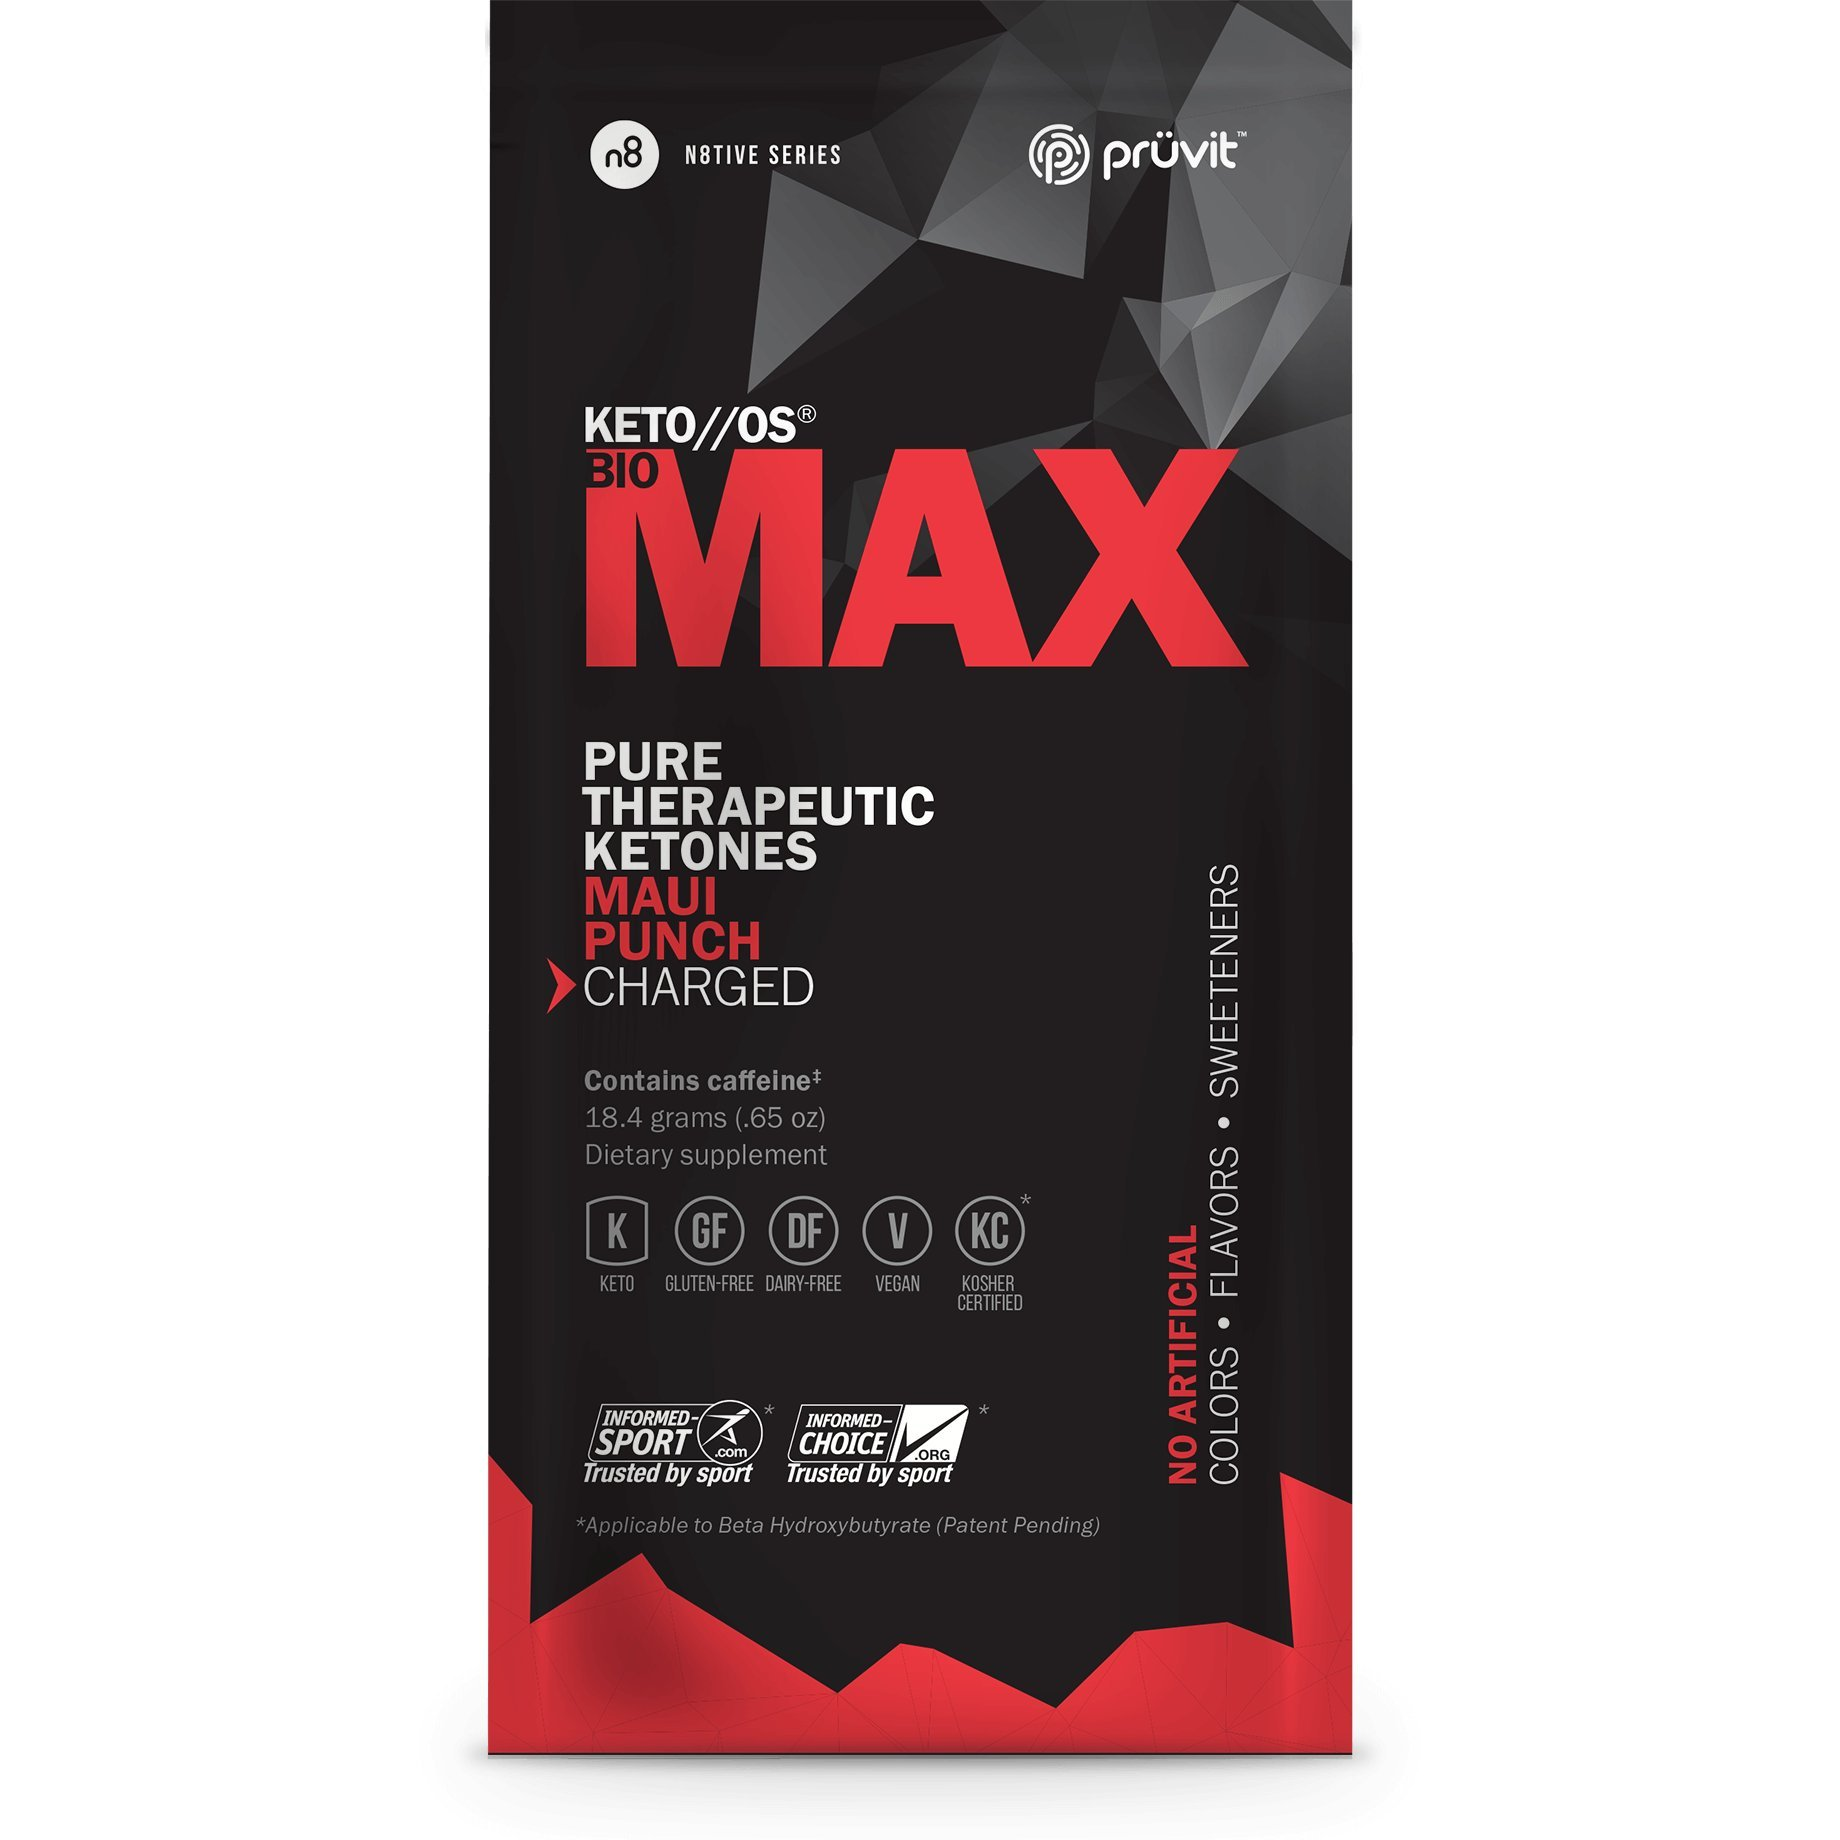 Pruvit KETO//OS Bio MAX Pure Therapeutic Ketones Drink Mix 10 Packets Maui Punch Flavor Charged by Pruvit (Image #1)